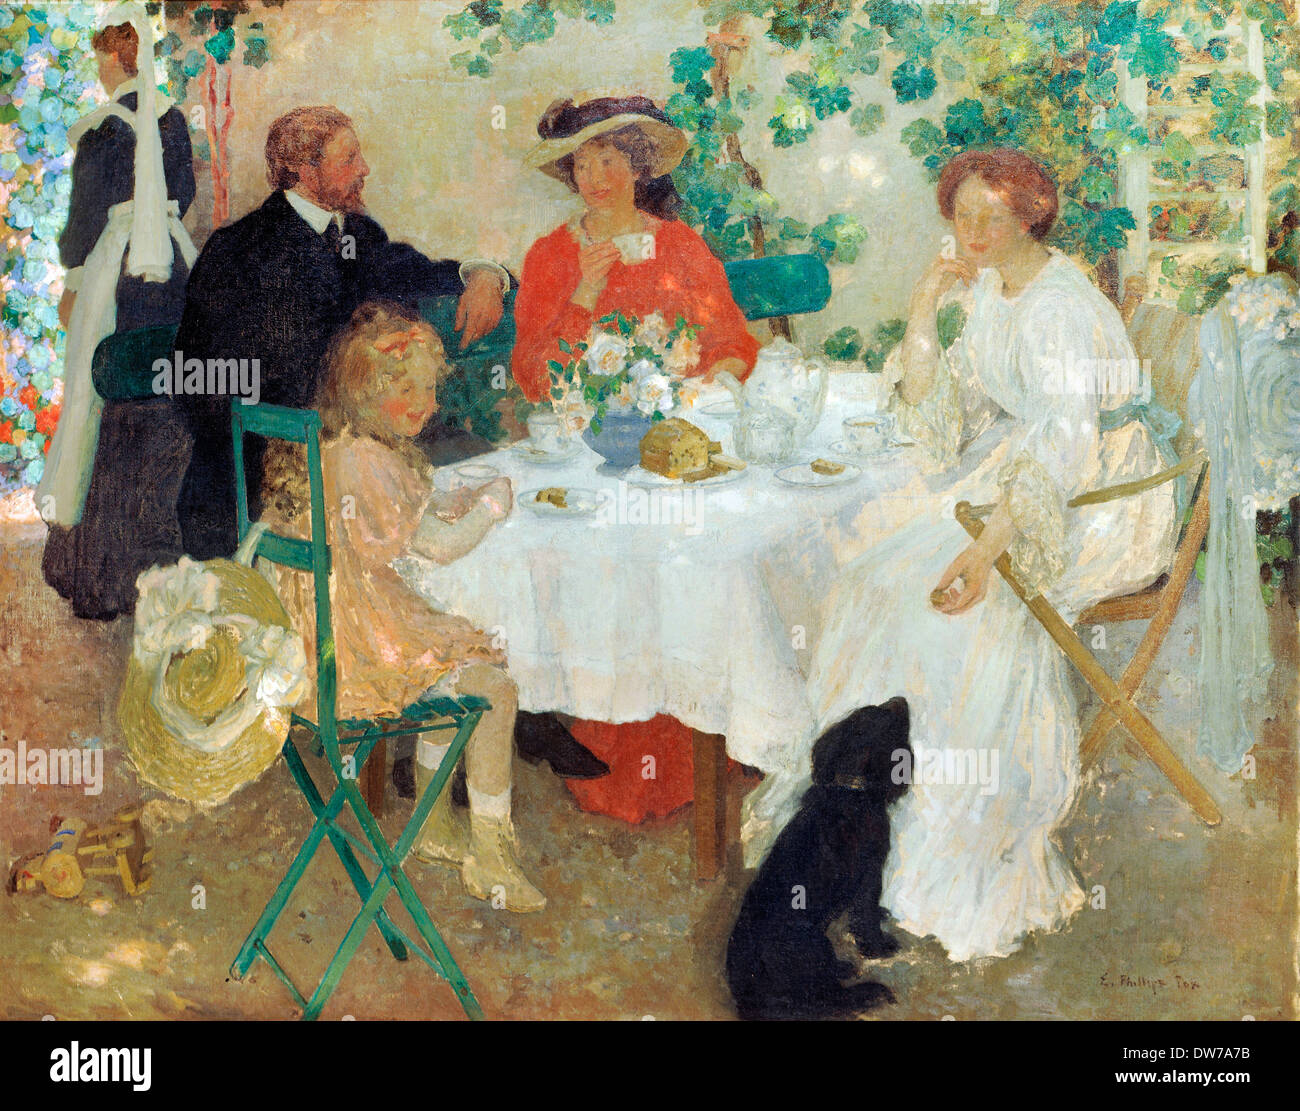 E Phillips Fox, Al Fresco. Circa 1904. Oil on canvas. Art Gallery of South Australia. - Stock Image